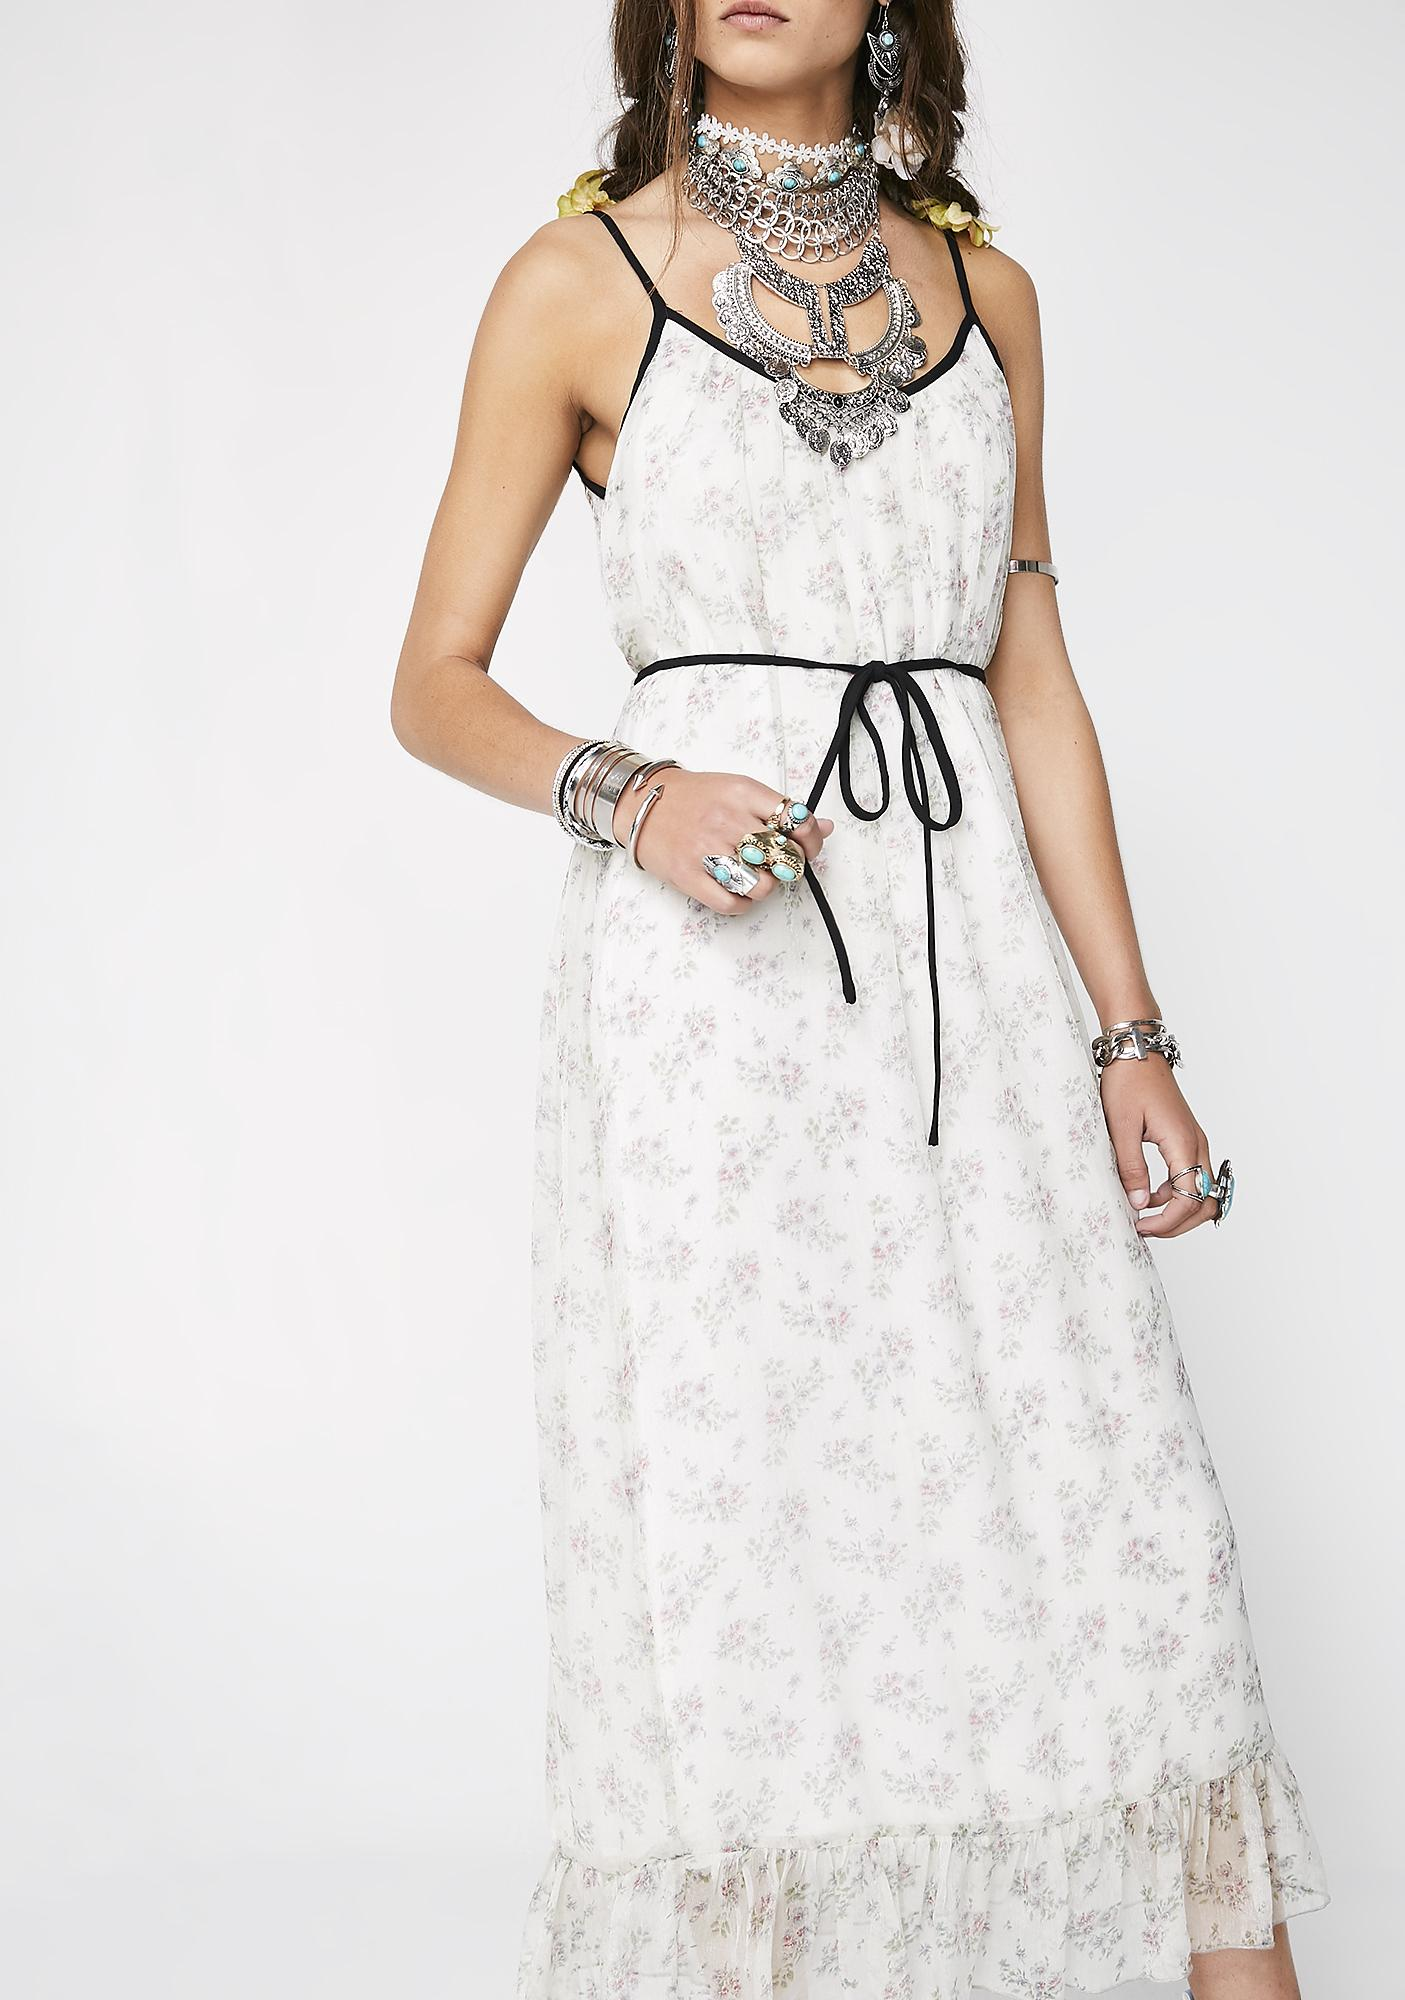 Whimsical Woman Floral Dress